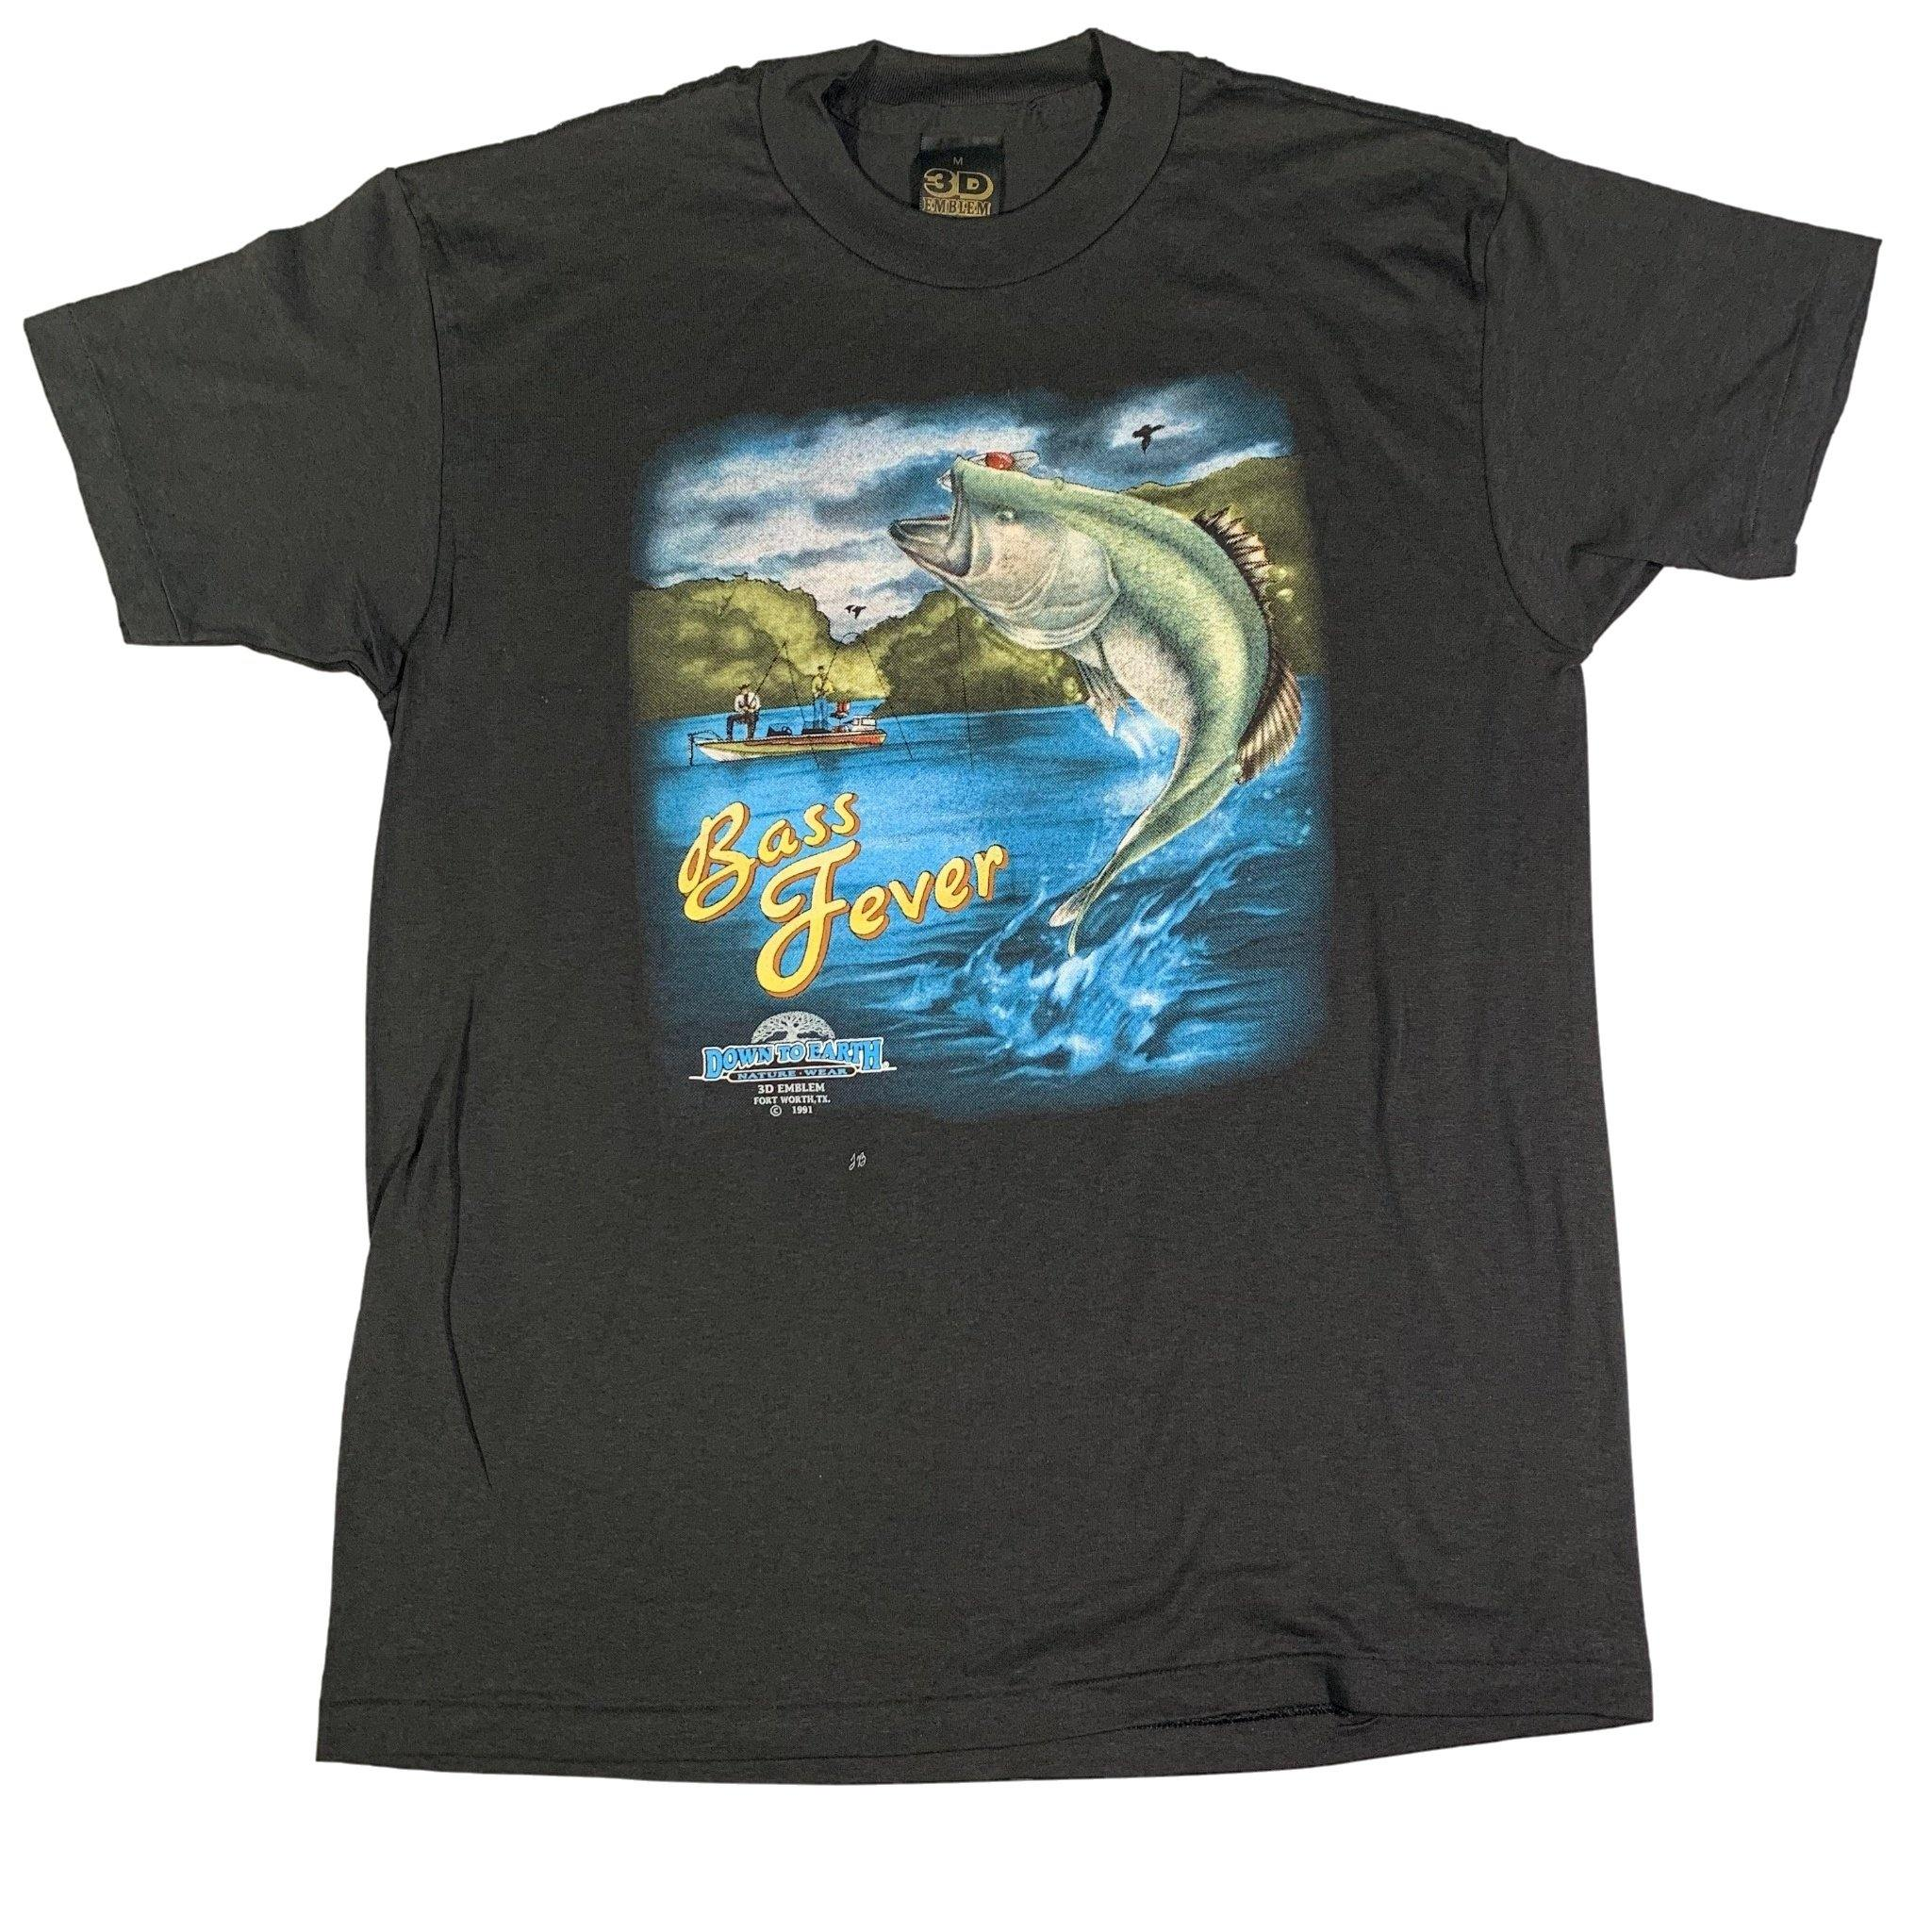 "Vintage 3D Emblem ""Down To Earth"" Bass Fever T-Shirt"